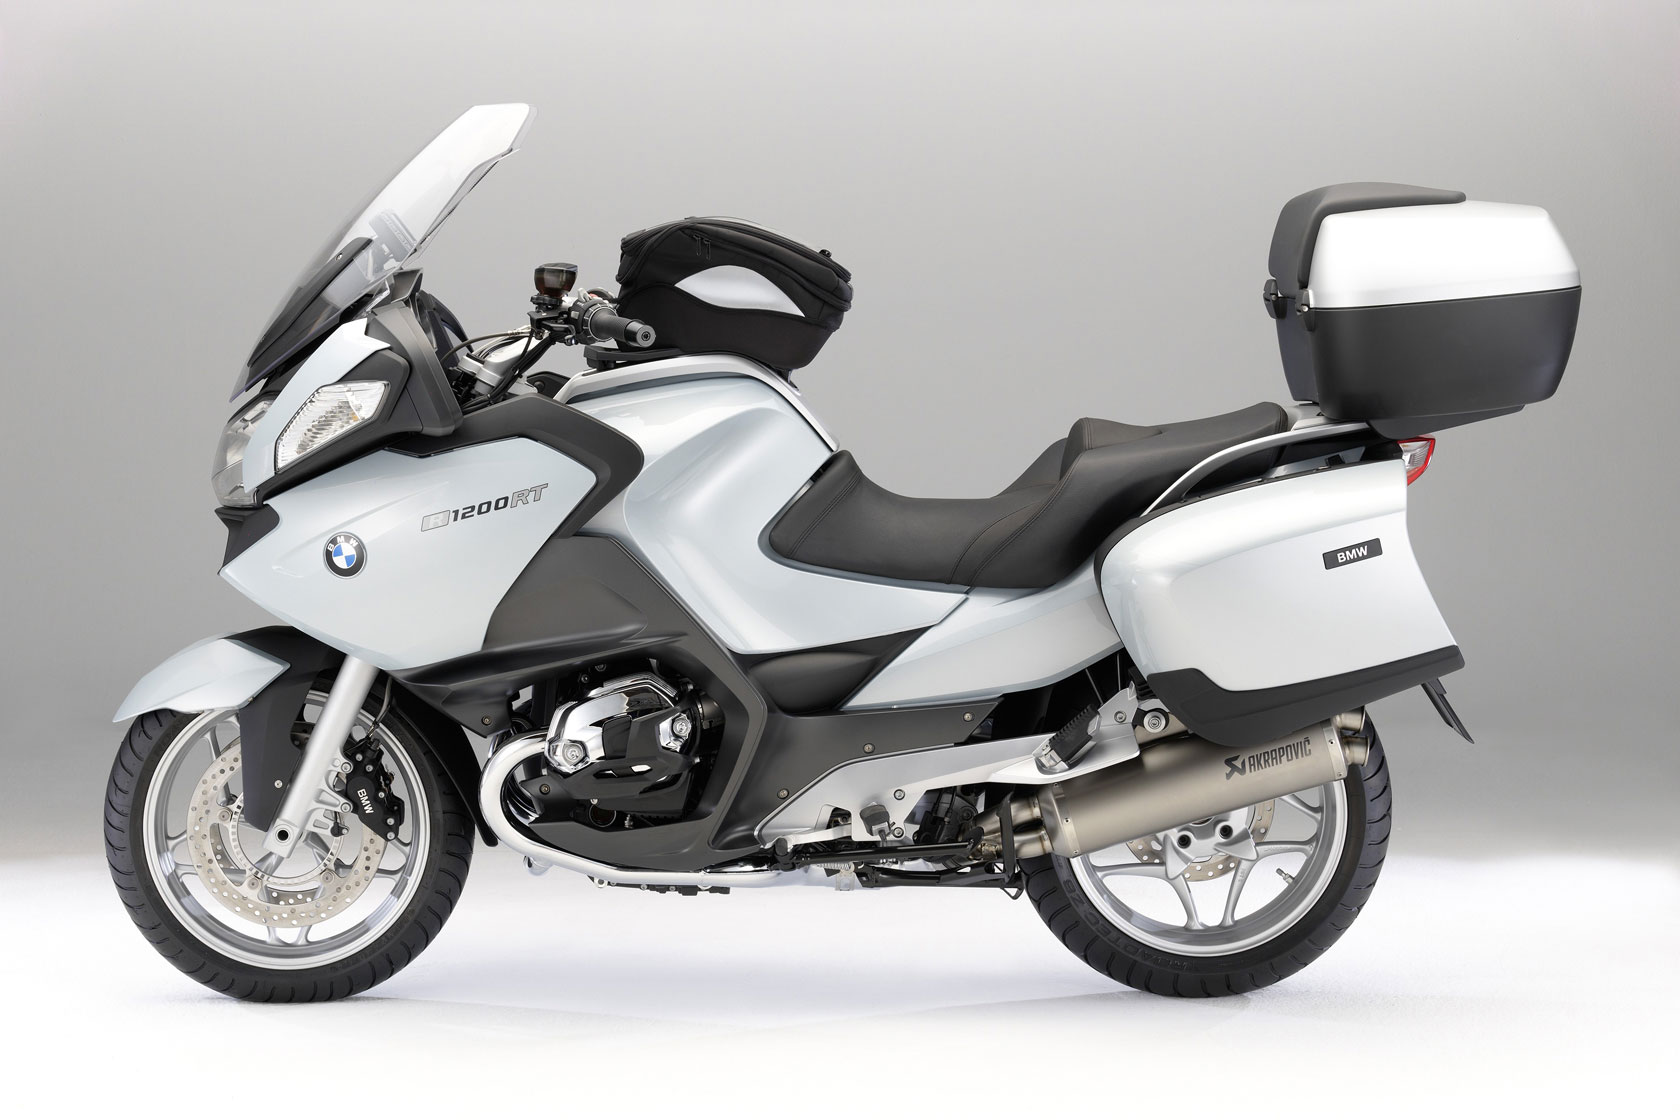 2011 bmw r1200rt. Black Bedroom Furniture Sets. Home Design Ideas